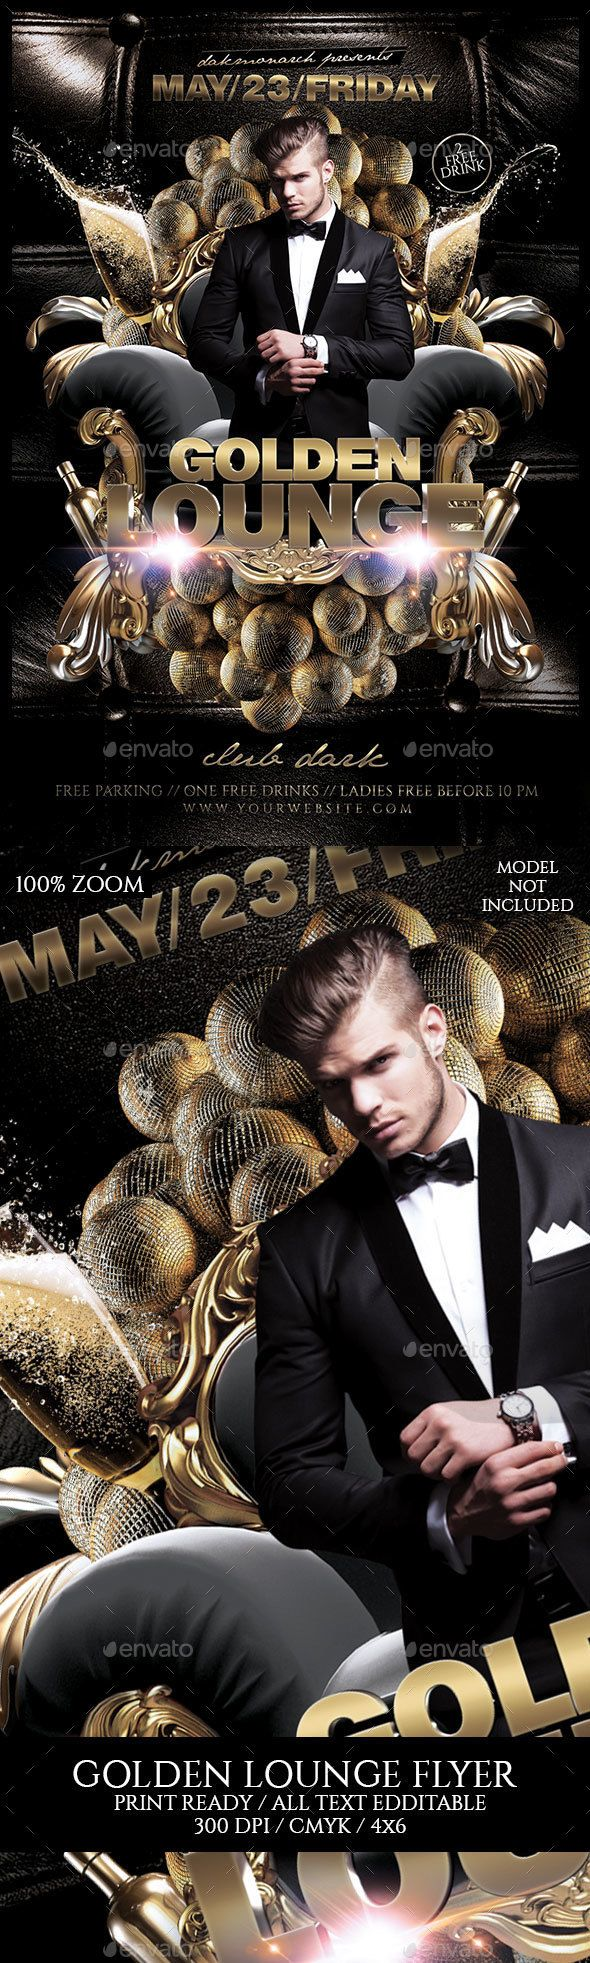 Golden Lounge  Flyer Template Edit Text And Template